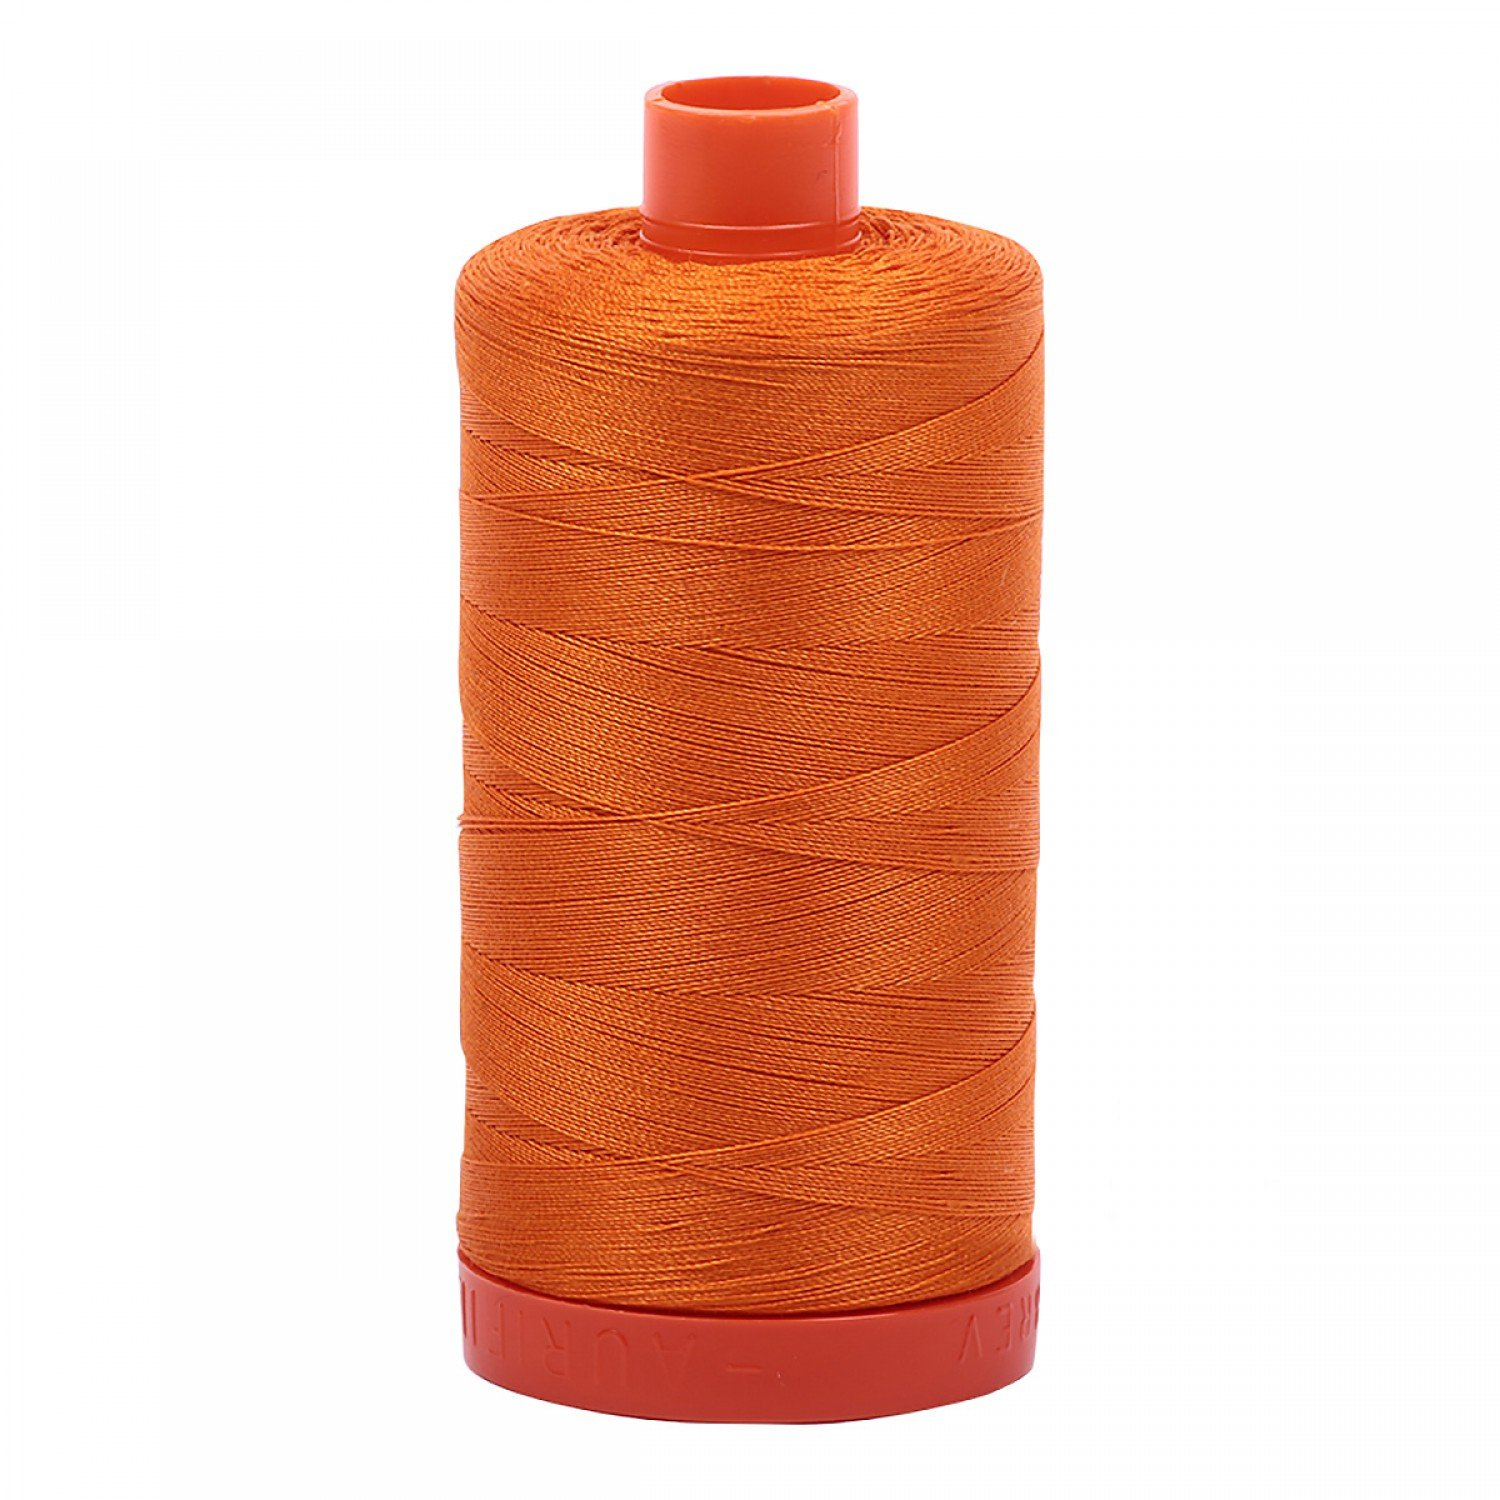 Aurifil Mako Cotton Thread 50 wt 1422 yds 1133 Bright Orange